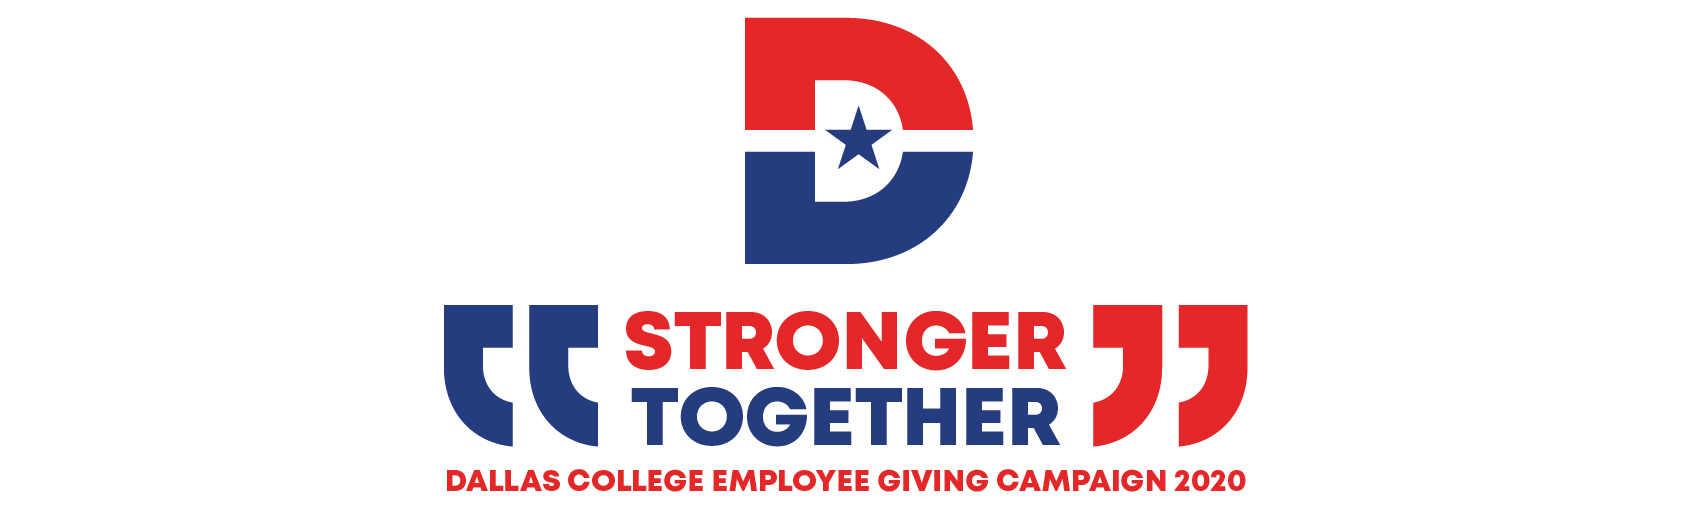 Stronger Together Dallas College Employee Giving Campaign 2020